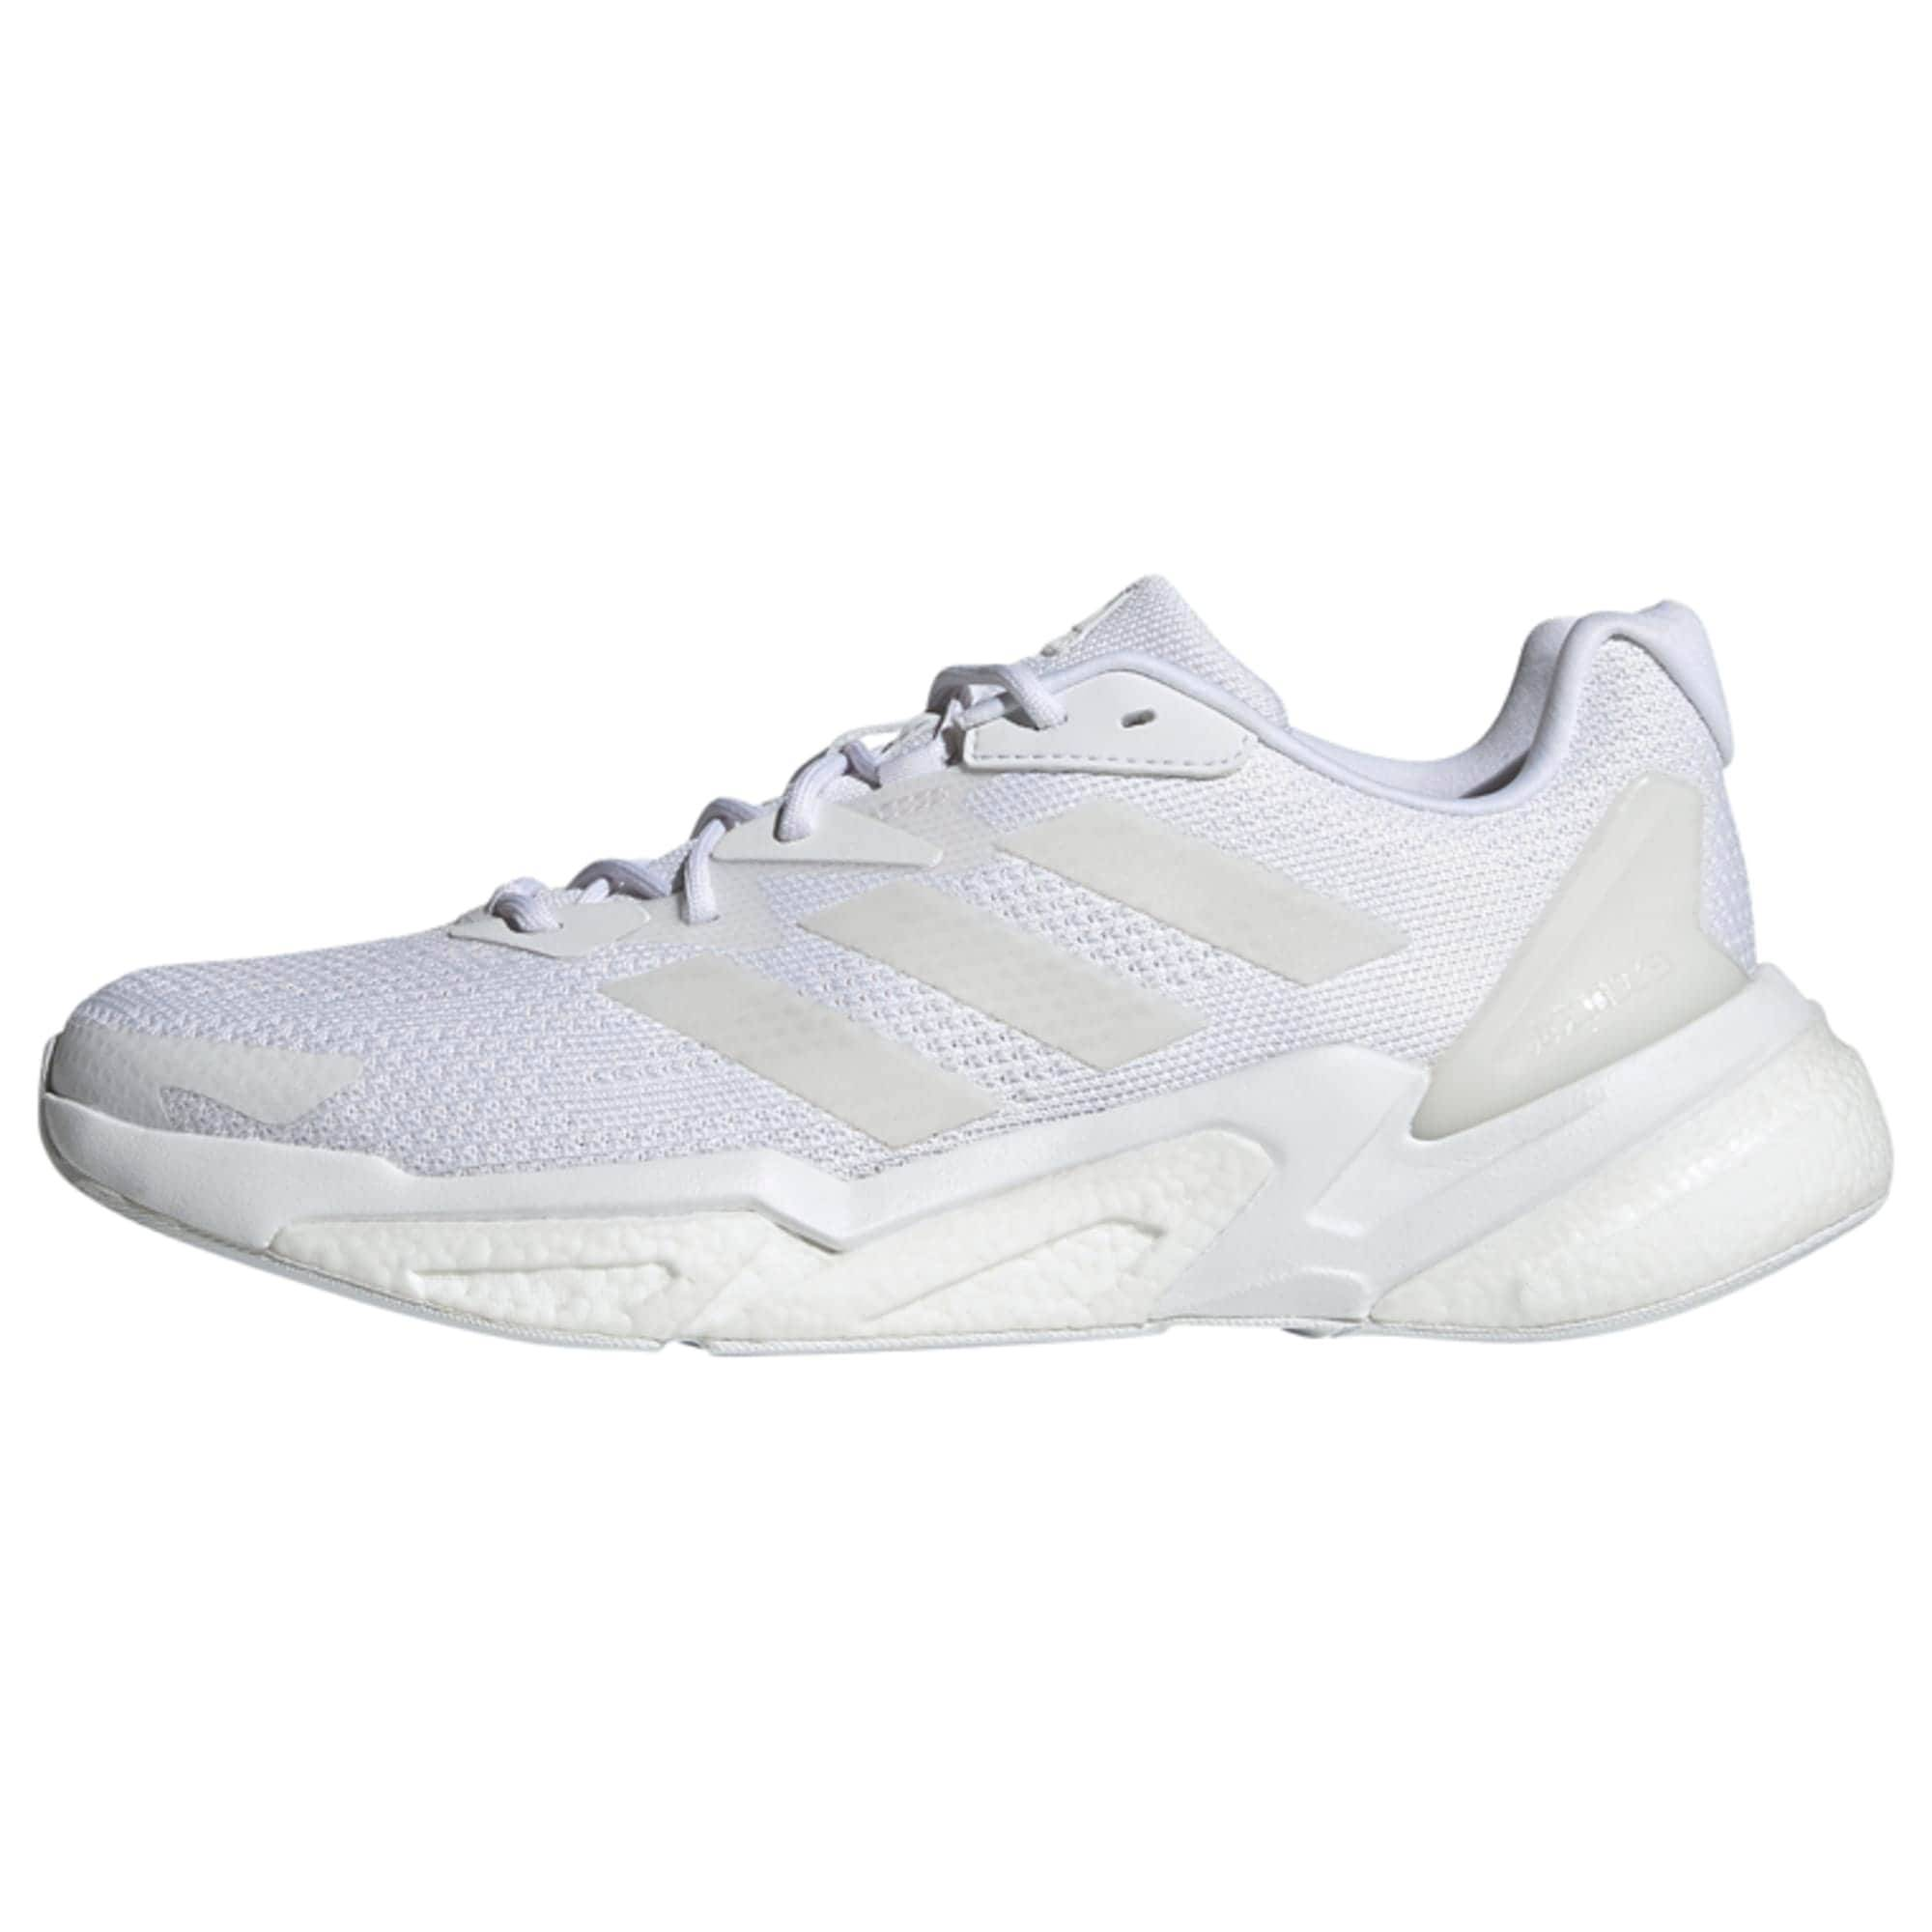 ADIDAS PERFORMANCE Chaussure de course  - Blanc - Taille: 11 - male